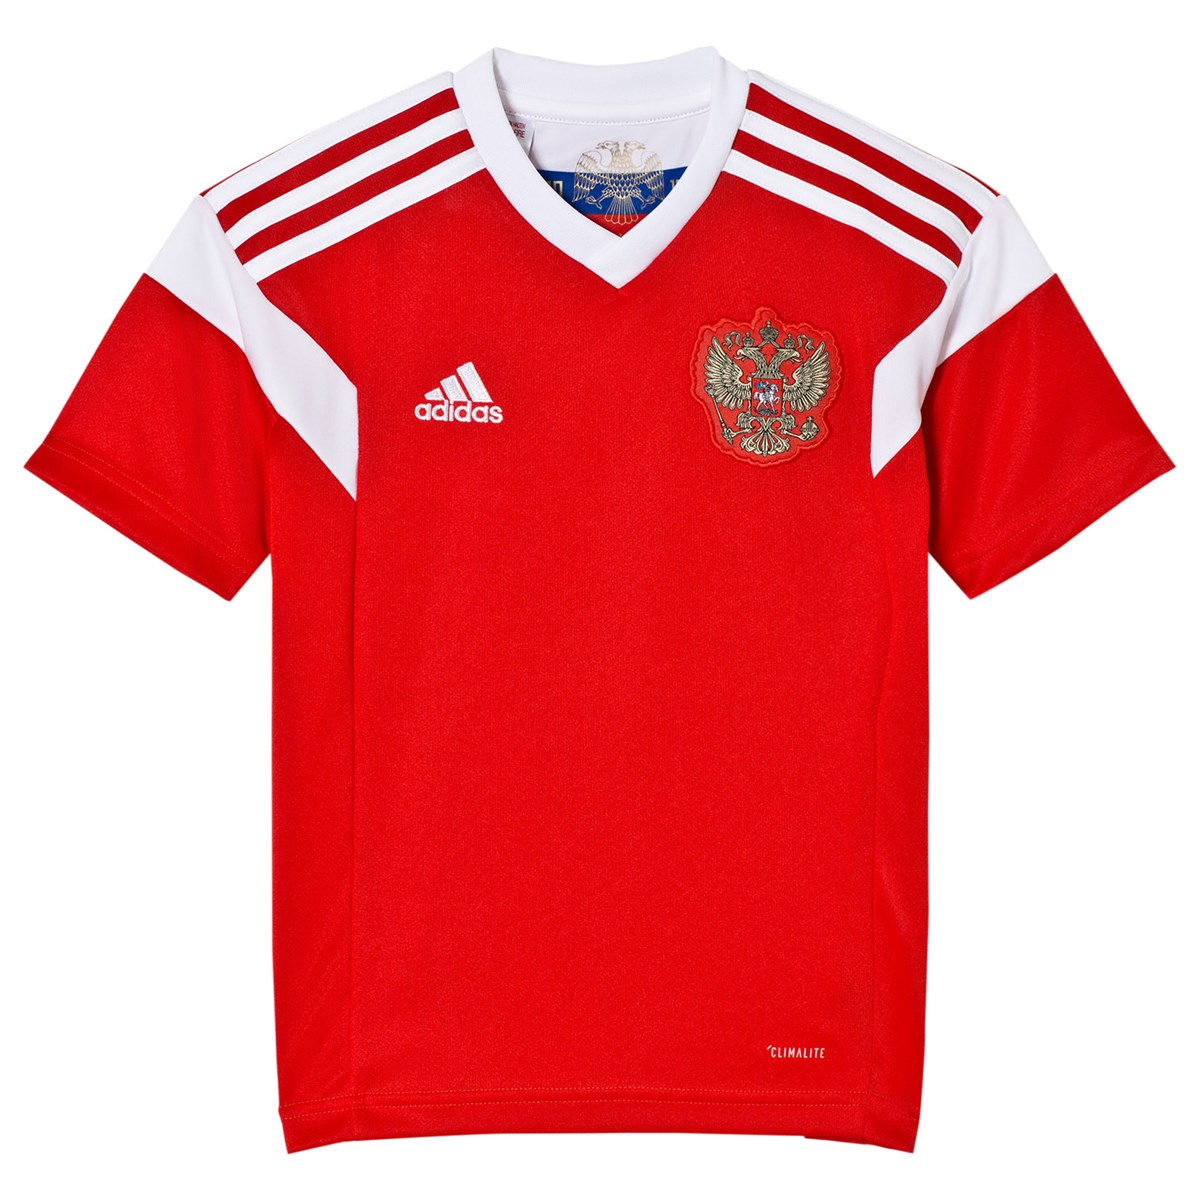 Why is Adidas so Popular Among Russians? – Weird Russia